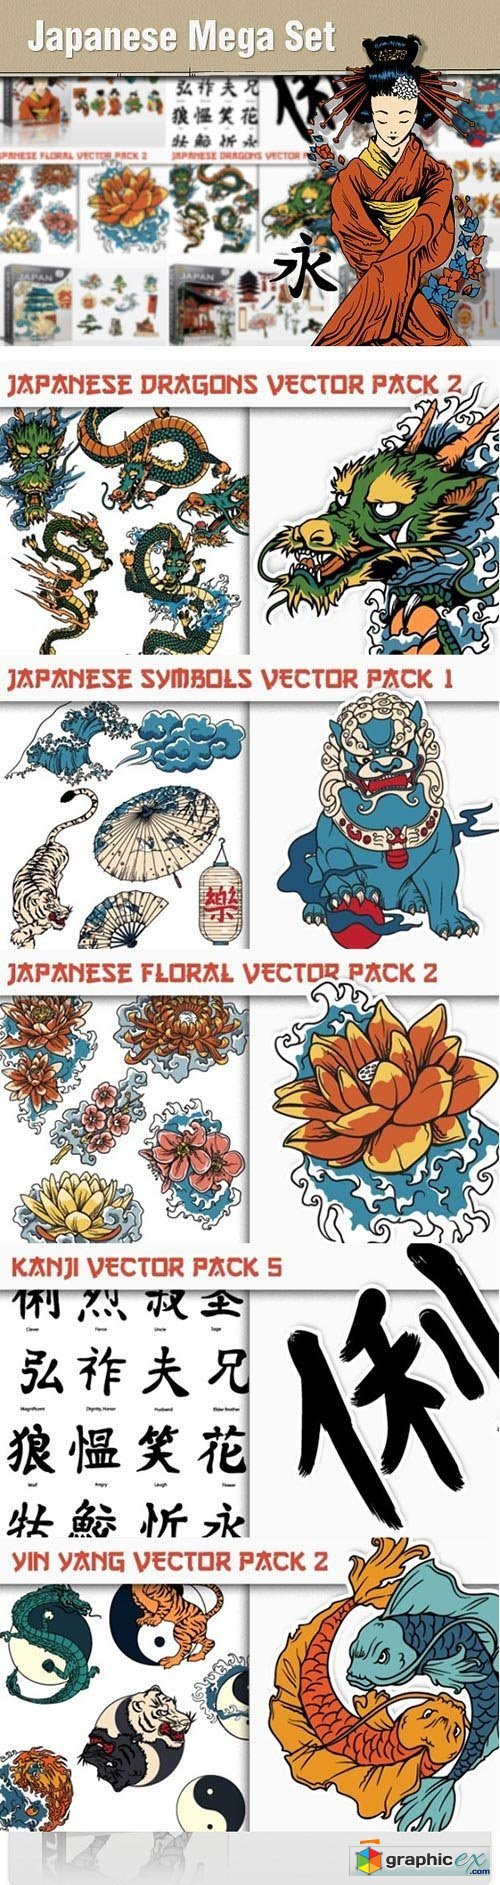 Designious - Japanese Vectors Mega Set, 159 Premium Designs